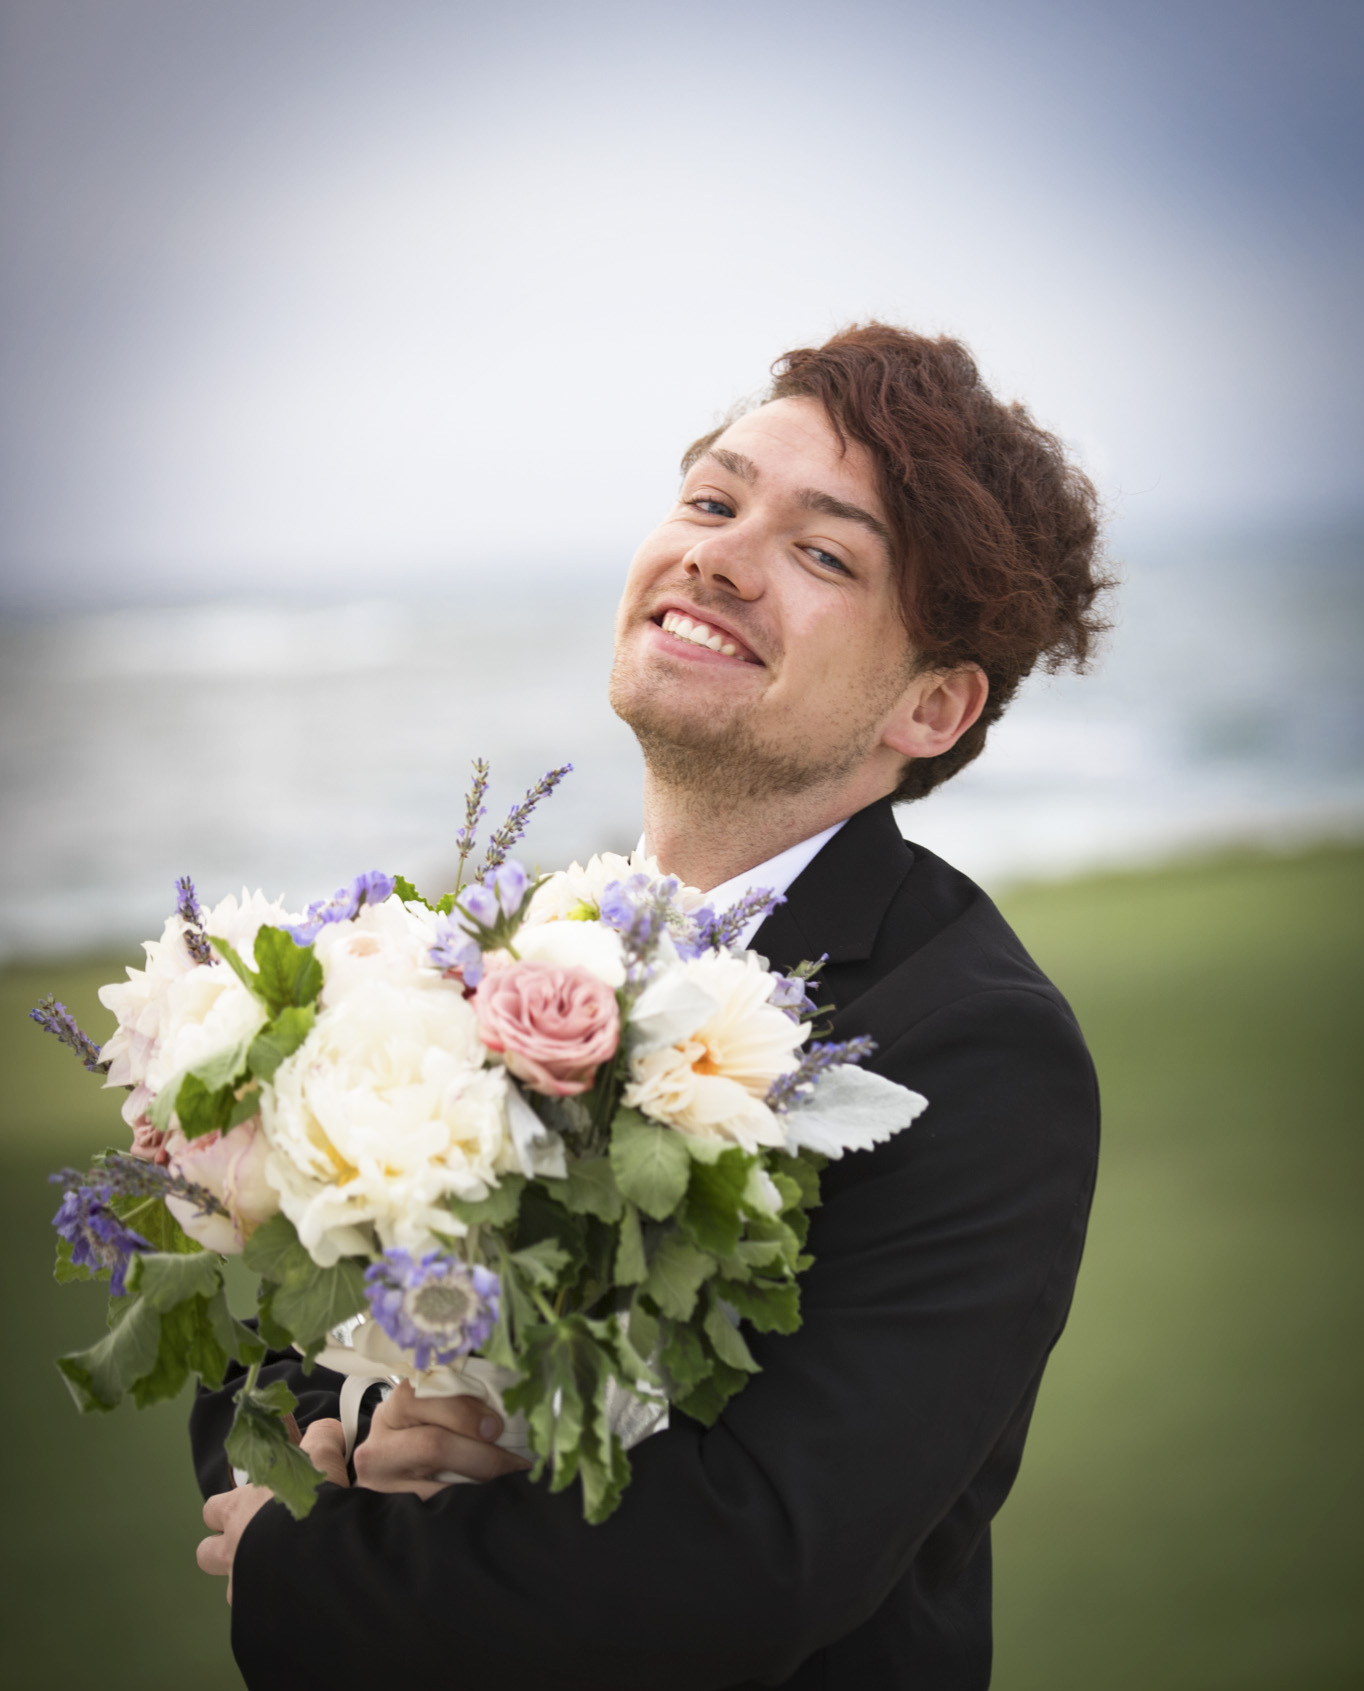 Intern Colby with flowers at wedding